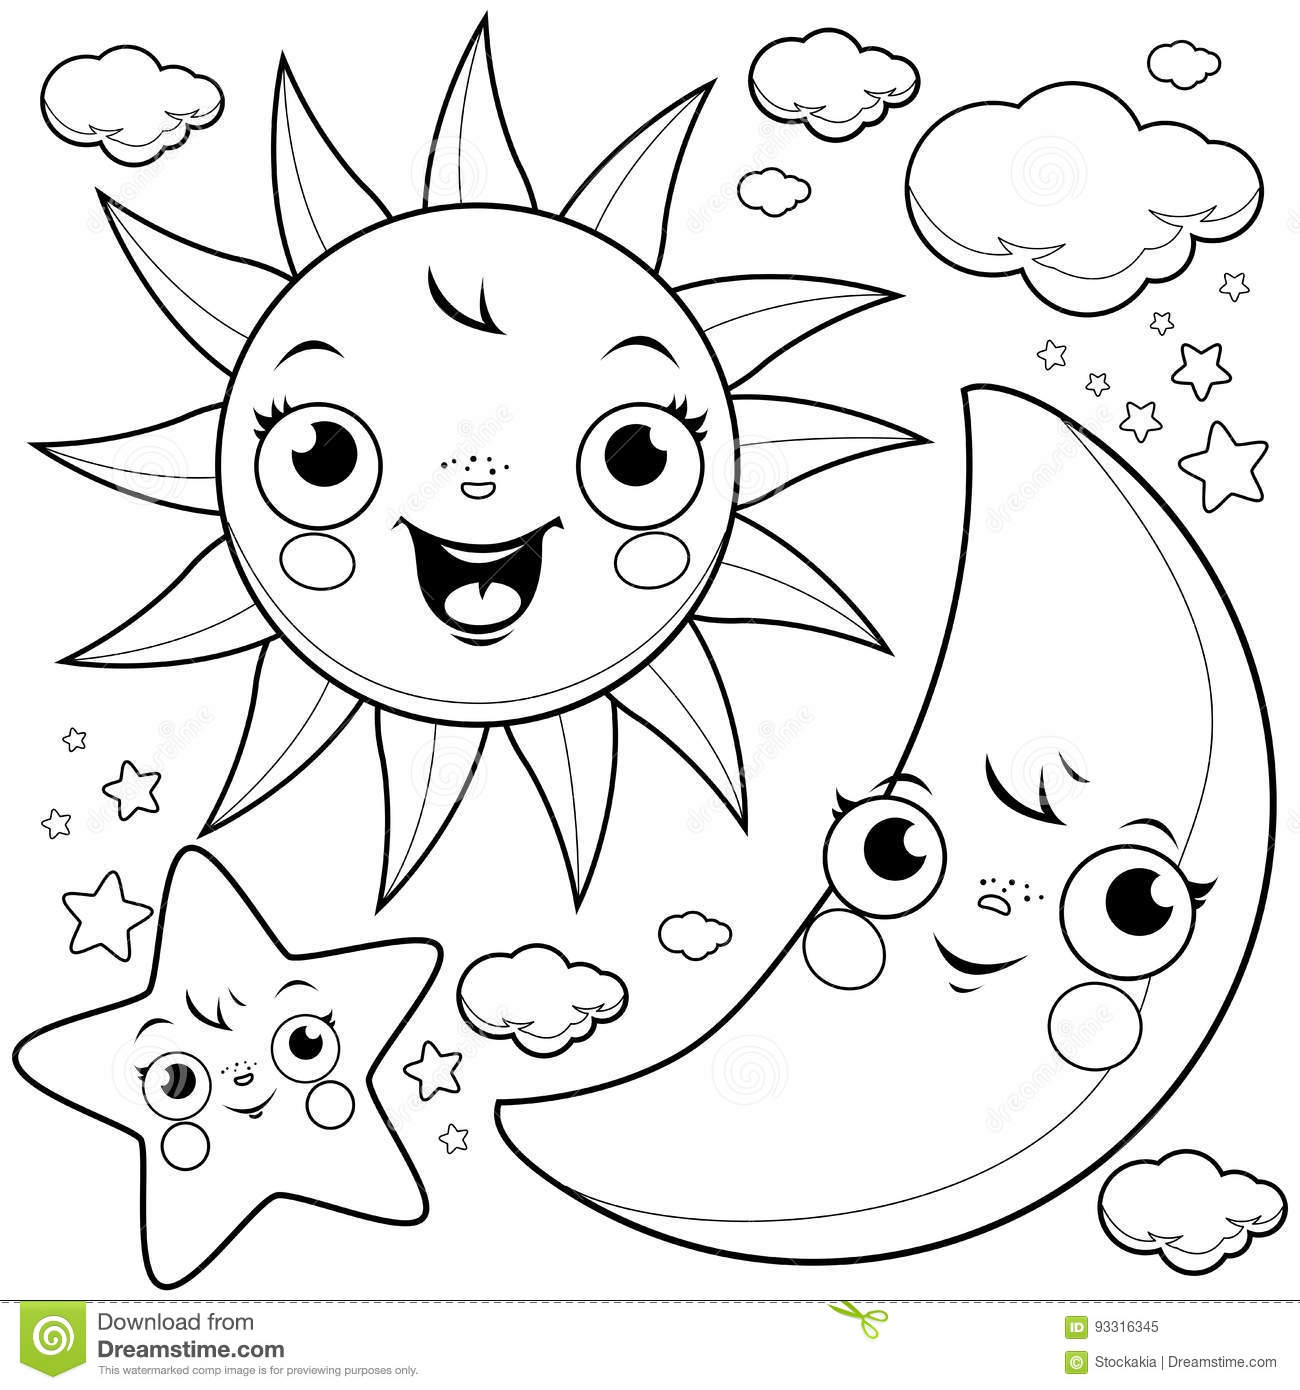 Earth and Moon coloring page | Free Printable Coloring Pages | 1390x1300